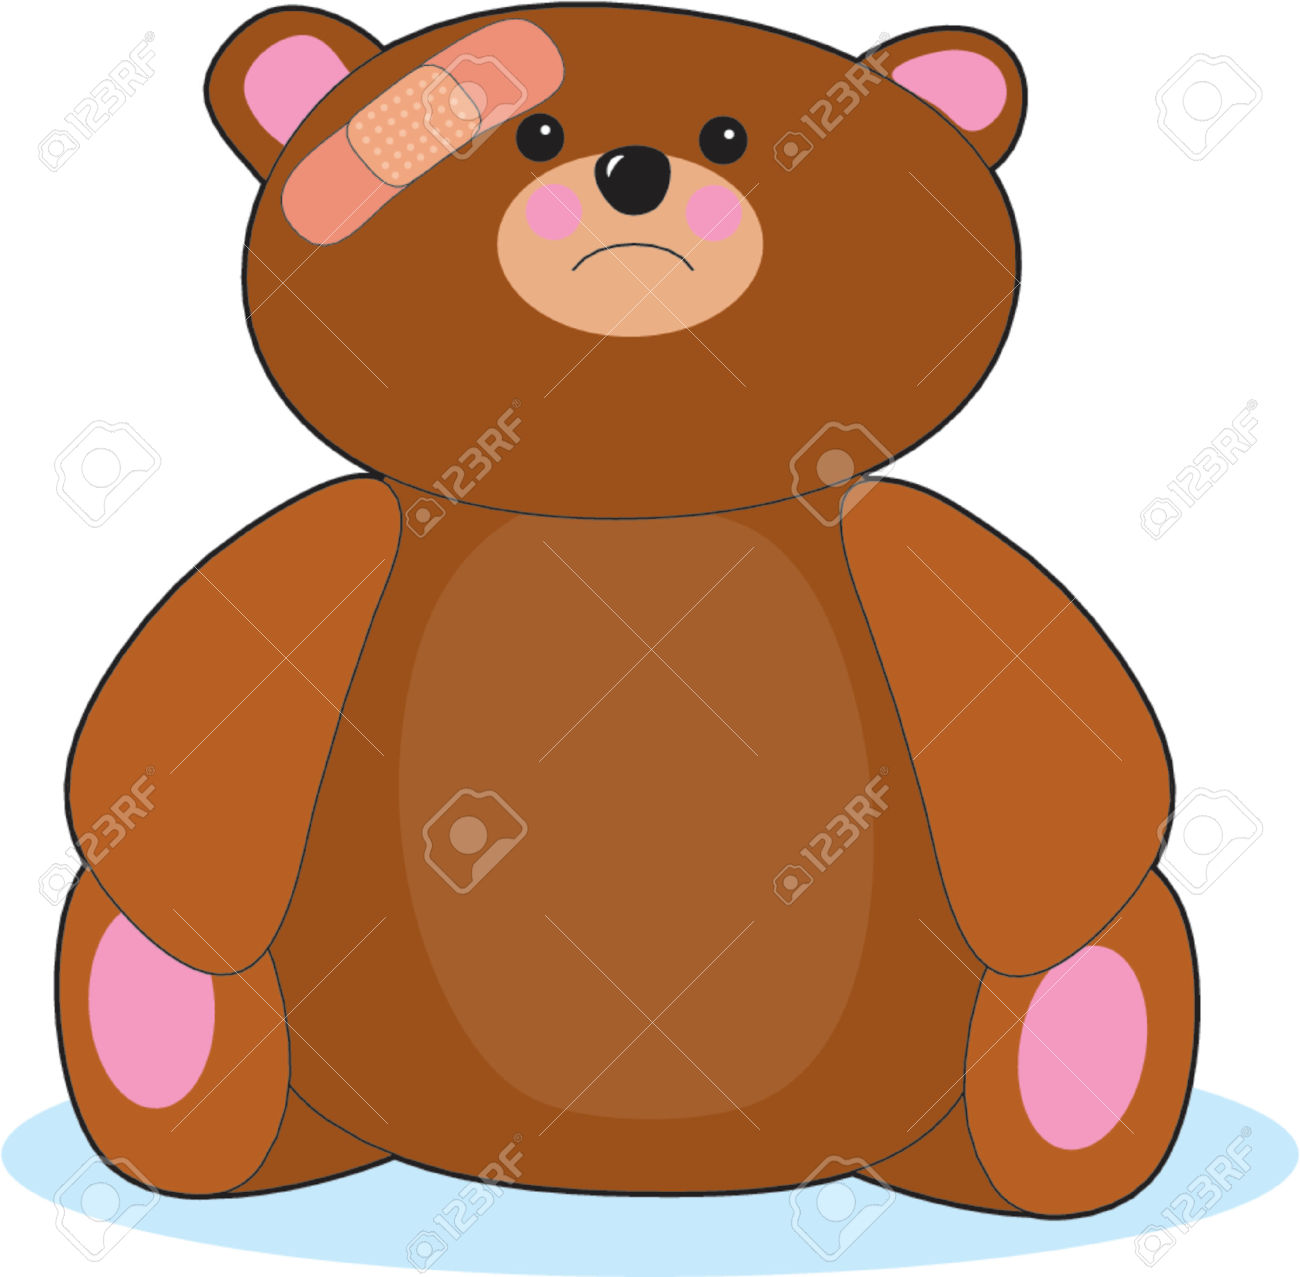 Stuffed Animal clipart #4, Download drawings